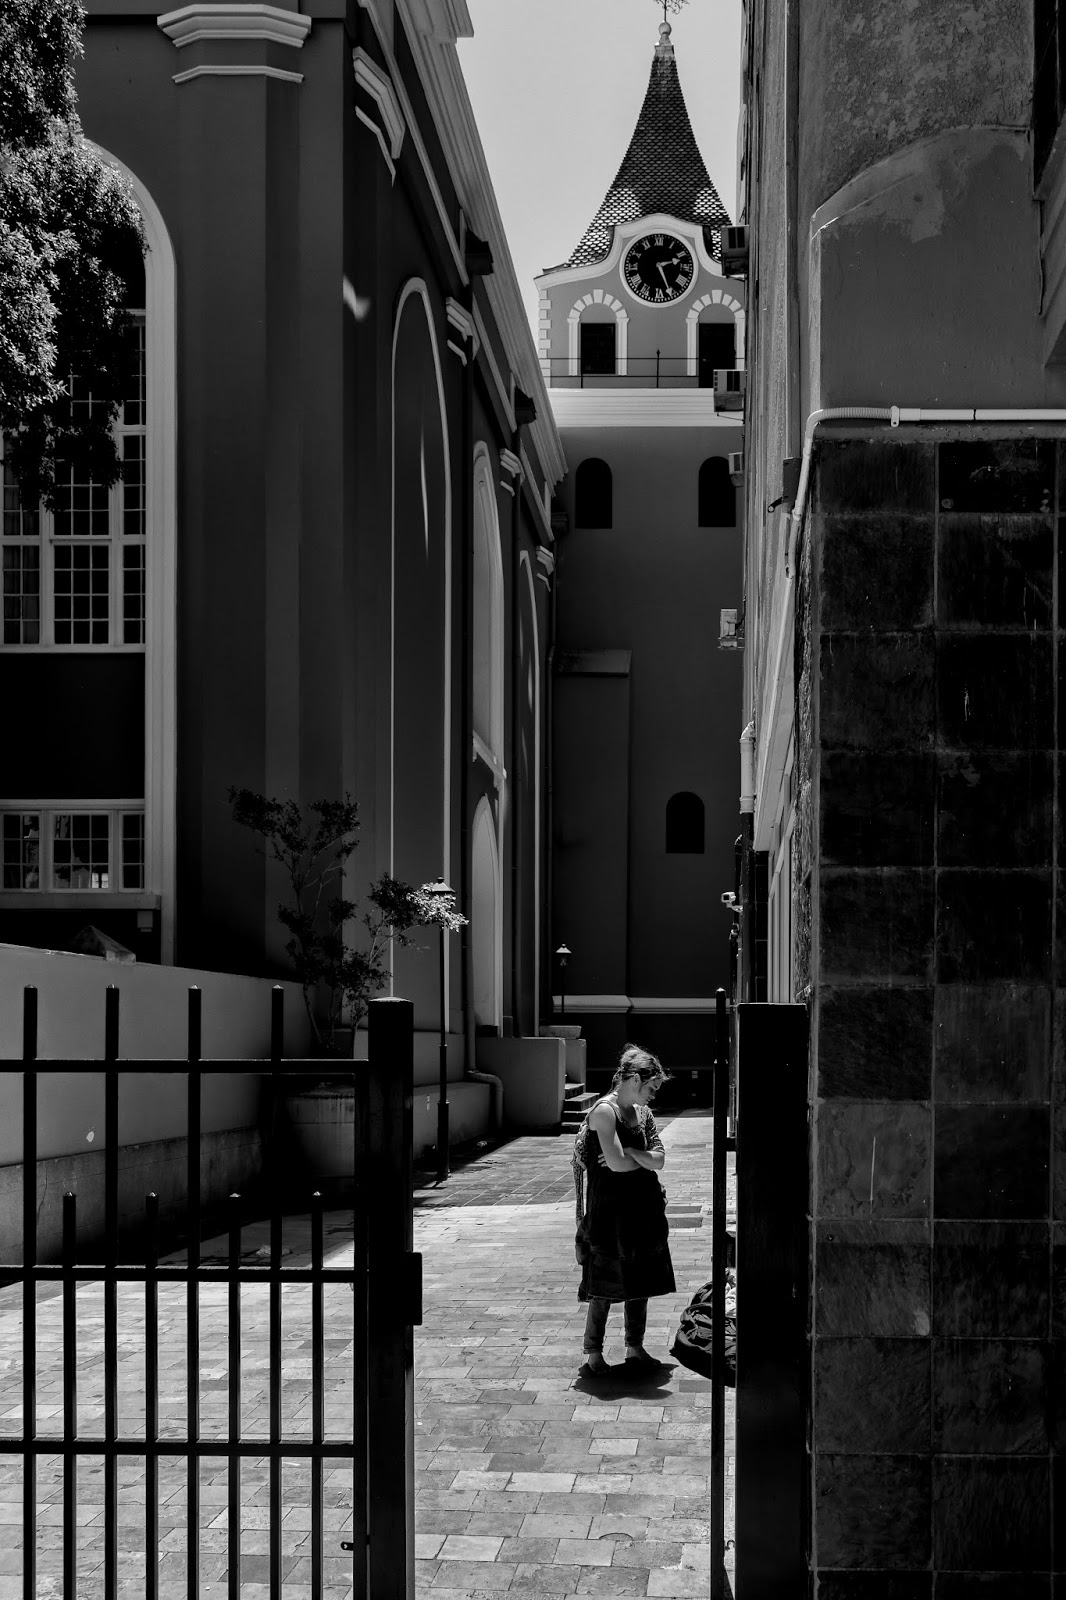 A young woman waits outside a church in this street photograph from Cape Town